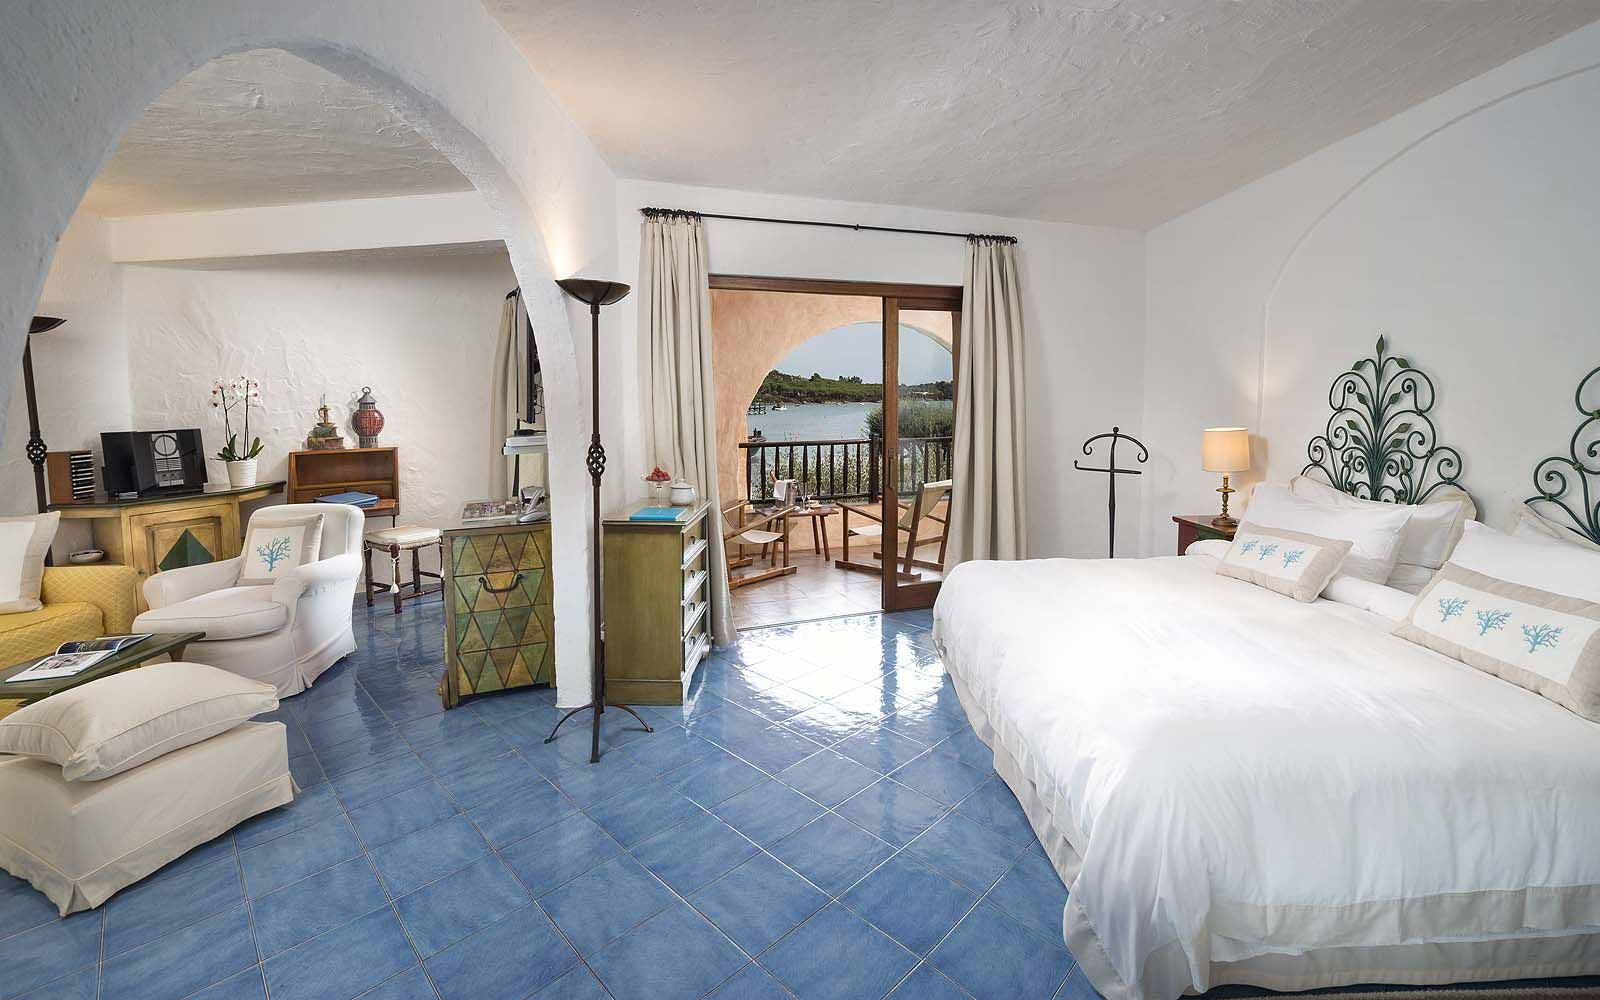 A Deluxe Suite at the Cala di Volpe